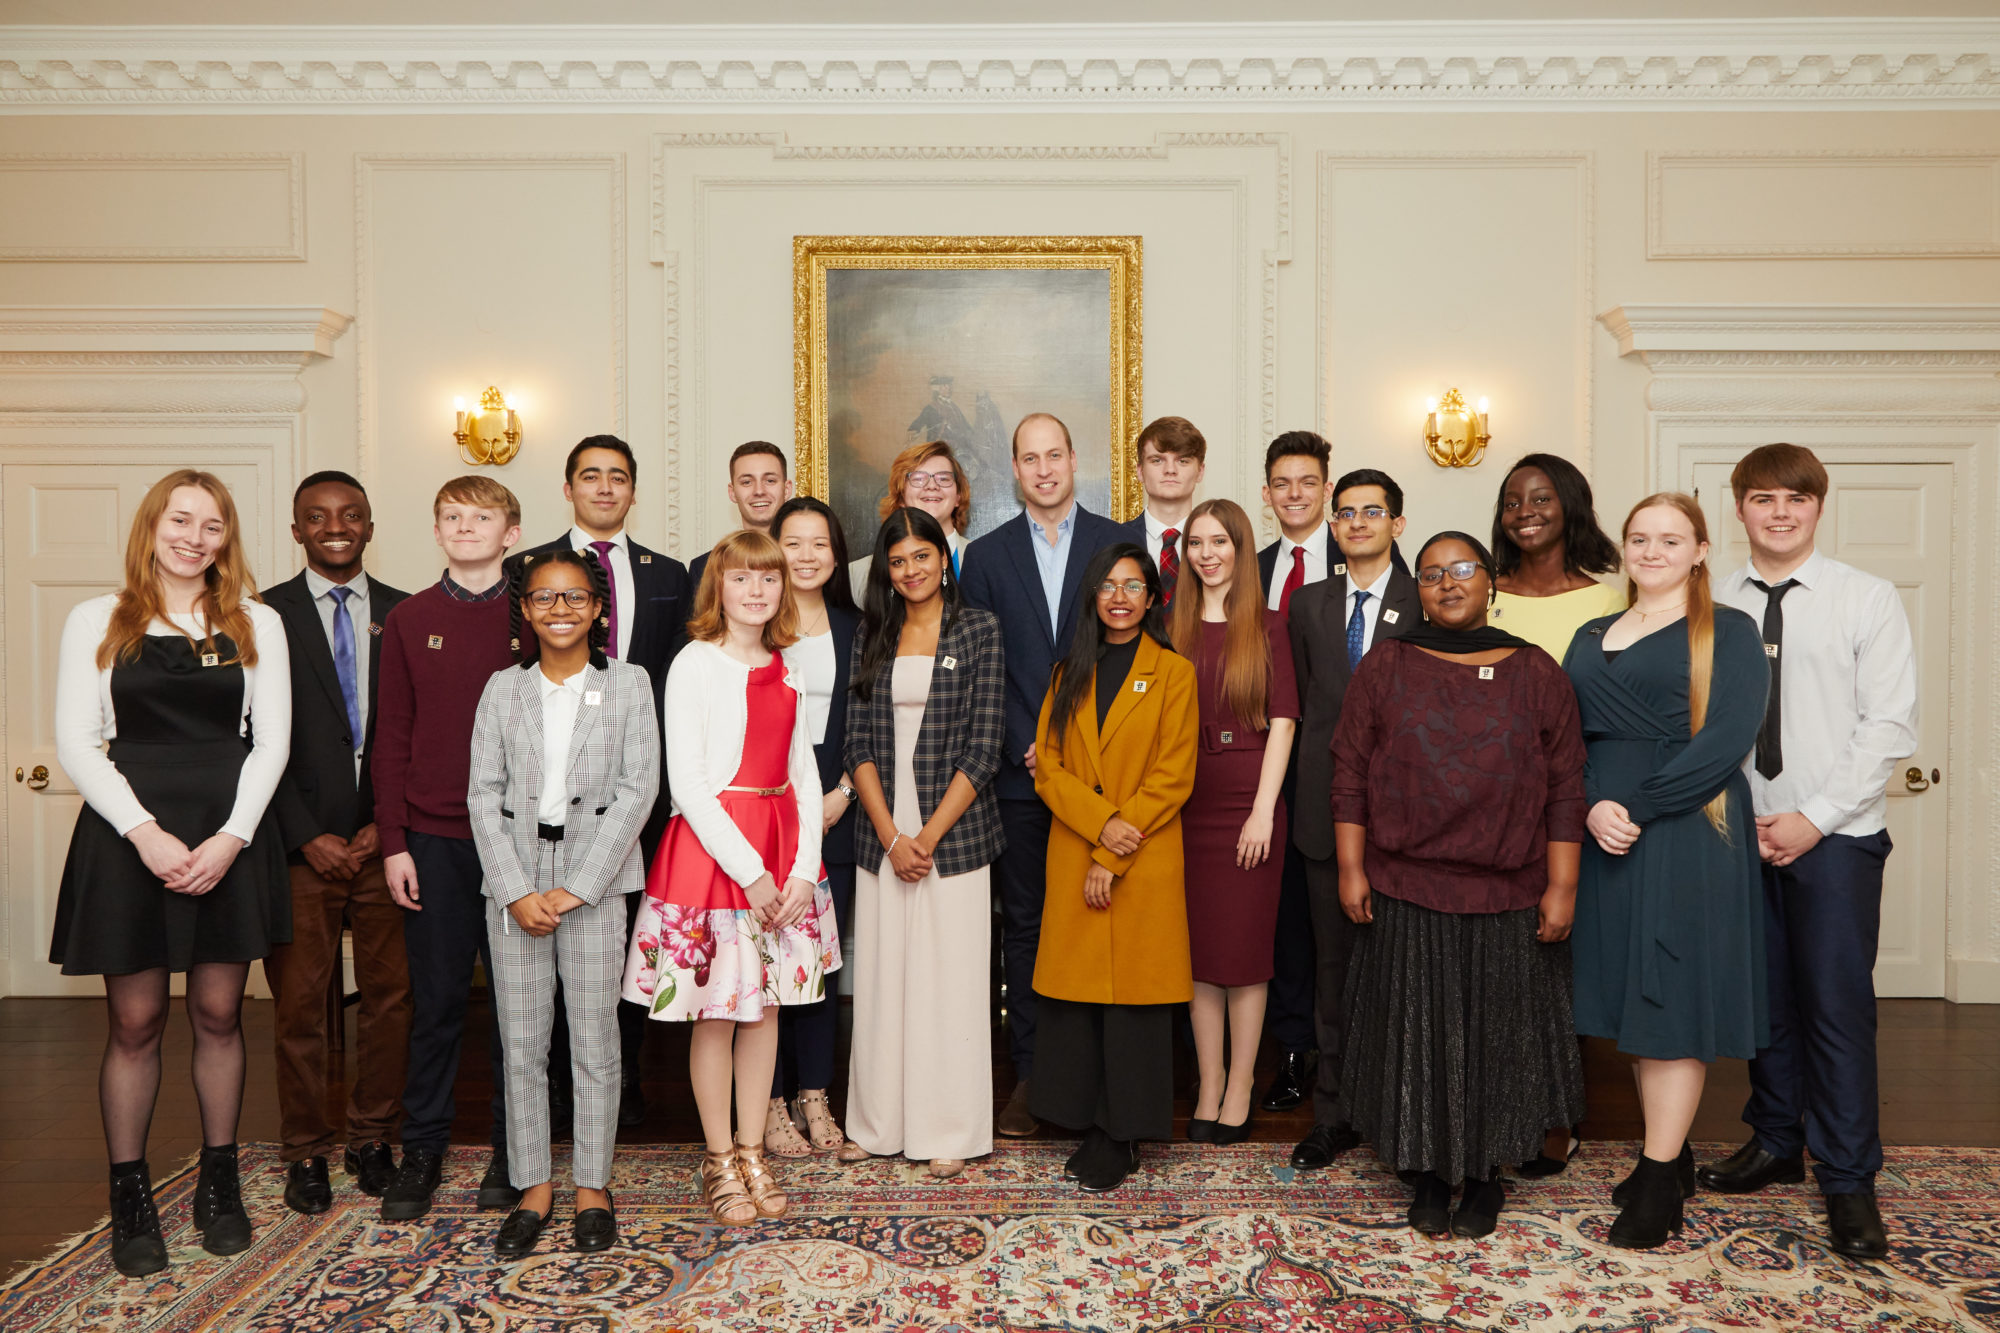 A group portrait of 2019 Legacy Award recipients and HRH The Duke of Cambridge at Kensington Palace